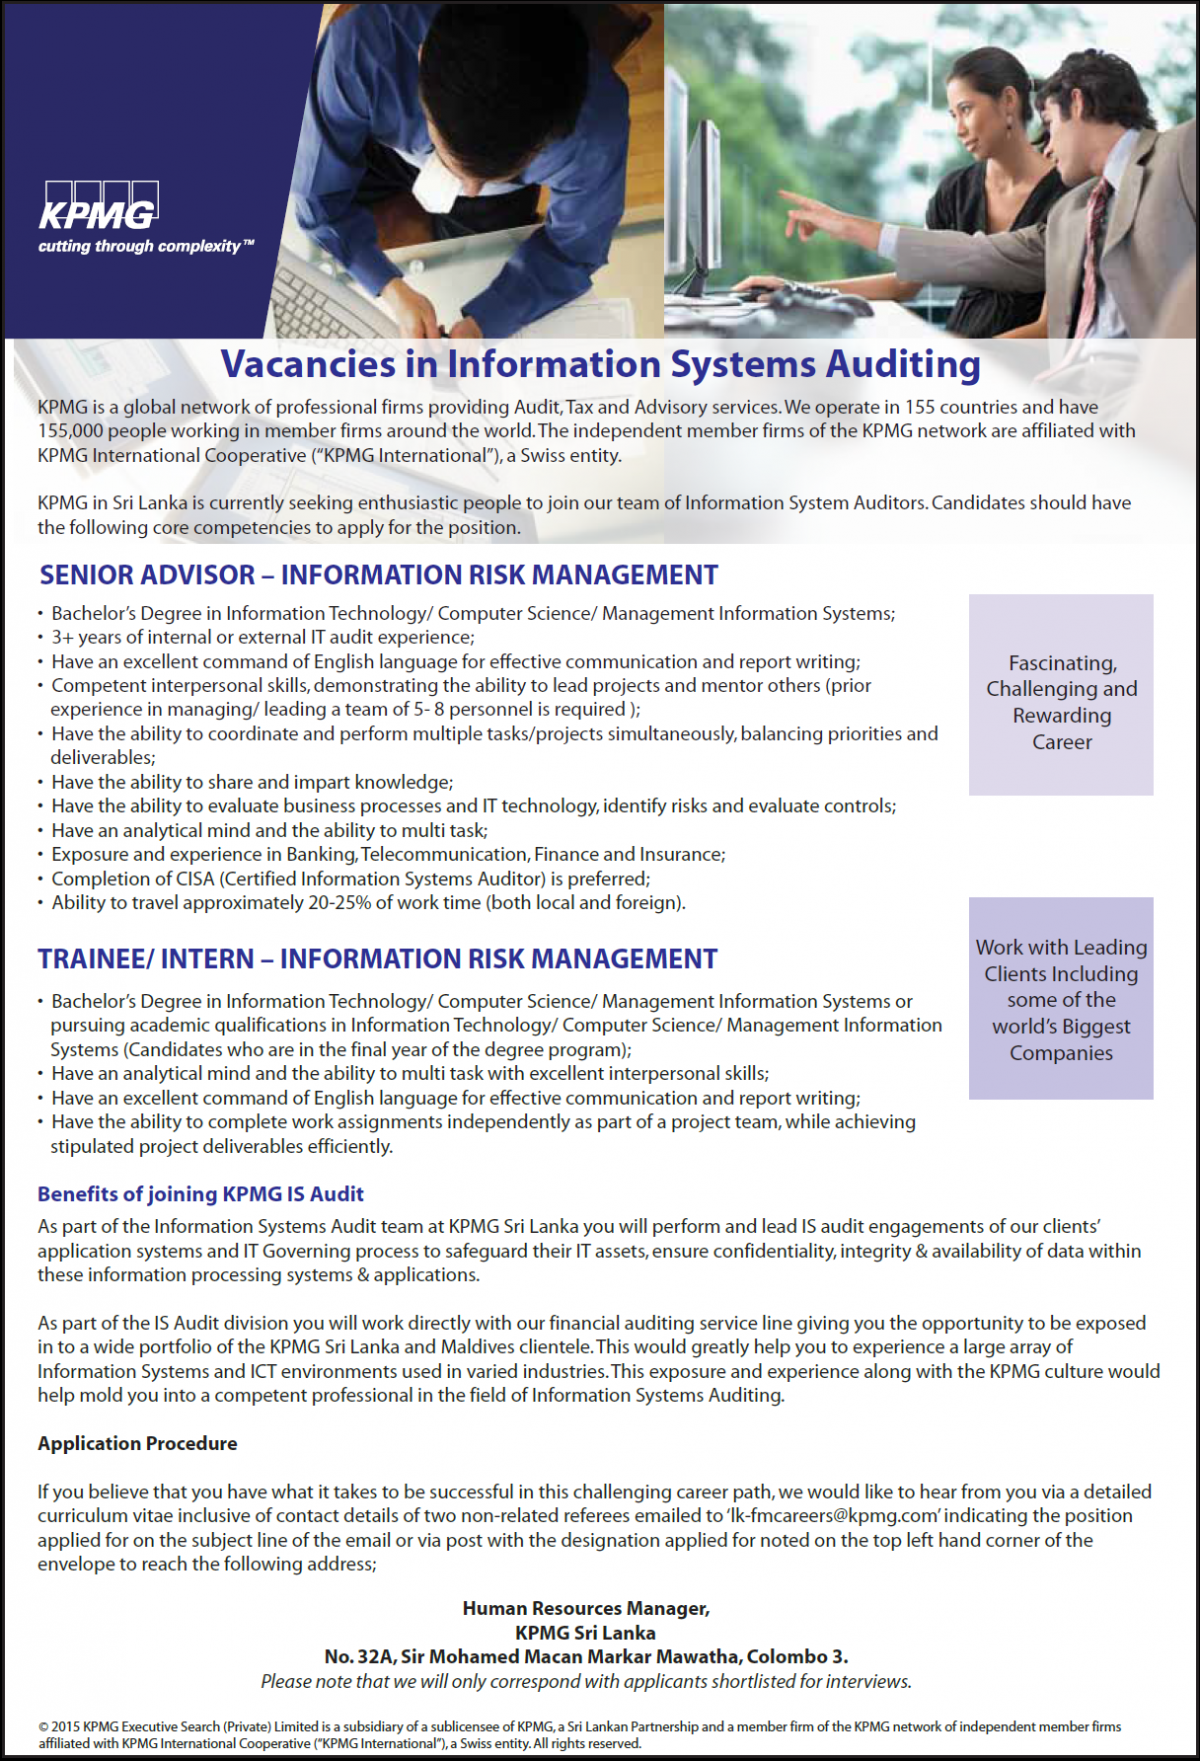 vacancies in information systems auditing job vacancy in sri lanka bachelor s degree in information technology computer science management information systems 3 years of internal or external it audit experience